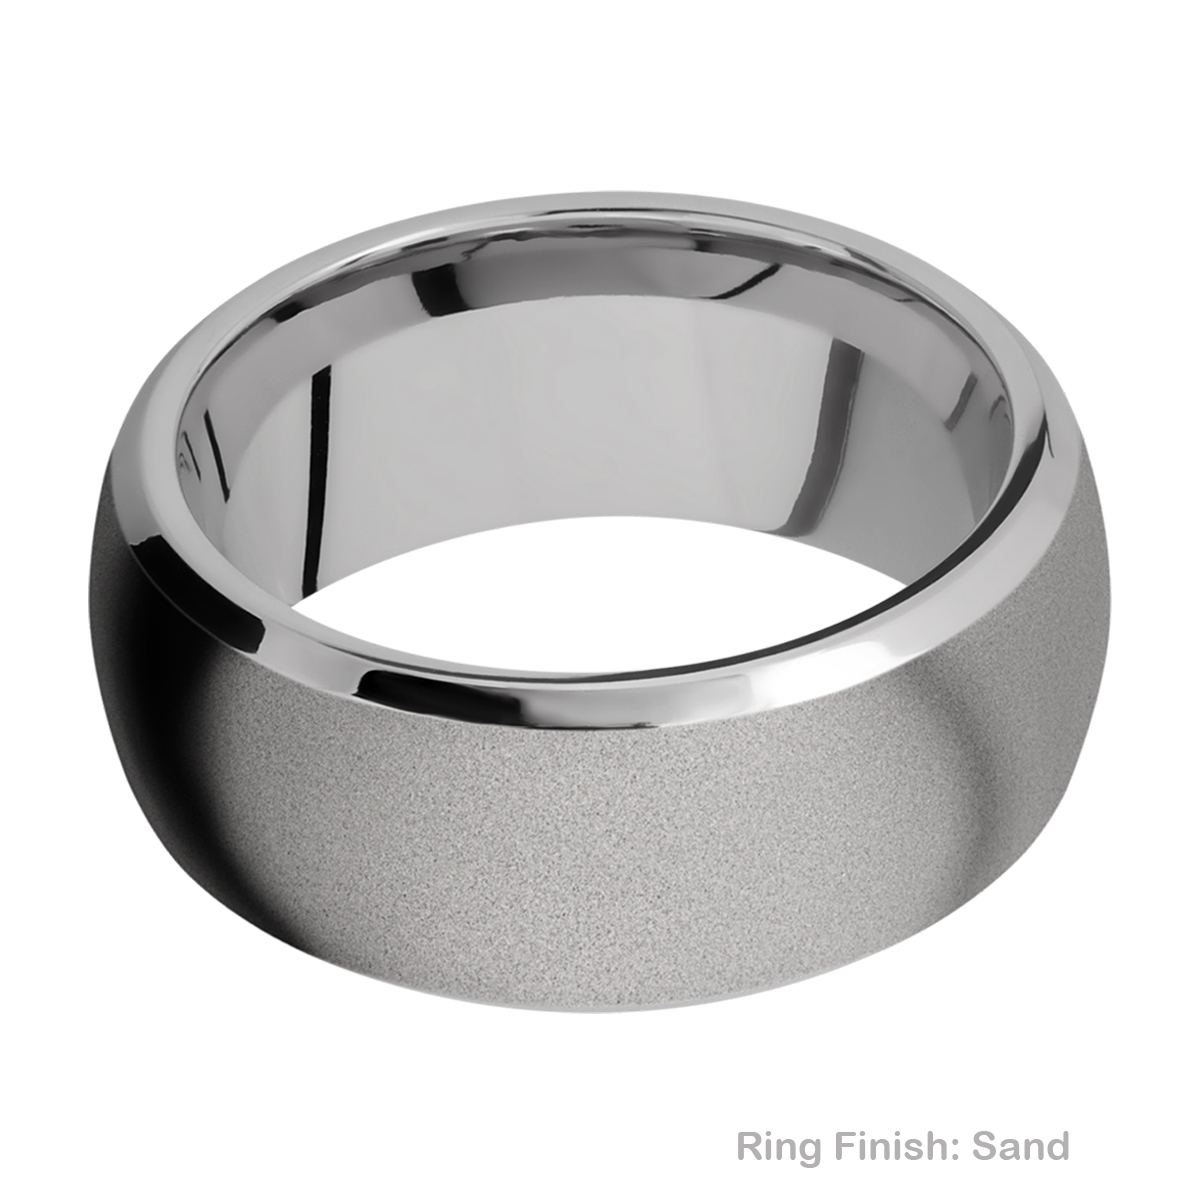 Lashbrook 10DB Titanium Wedding Ring or Band Alternative View 4